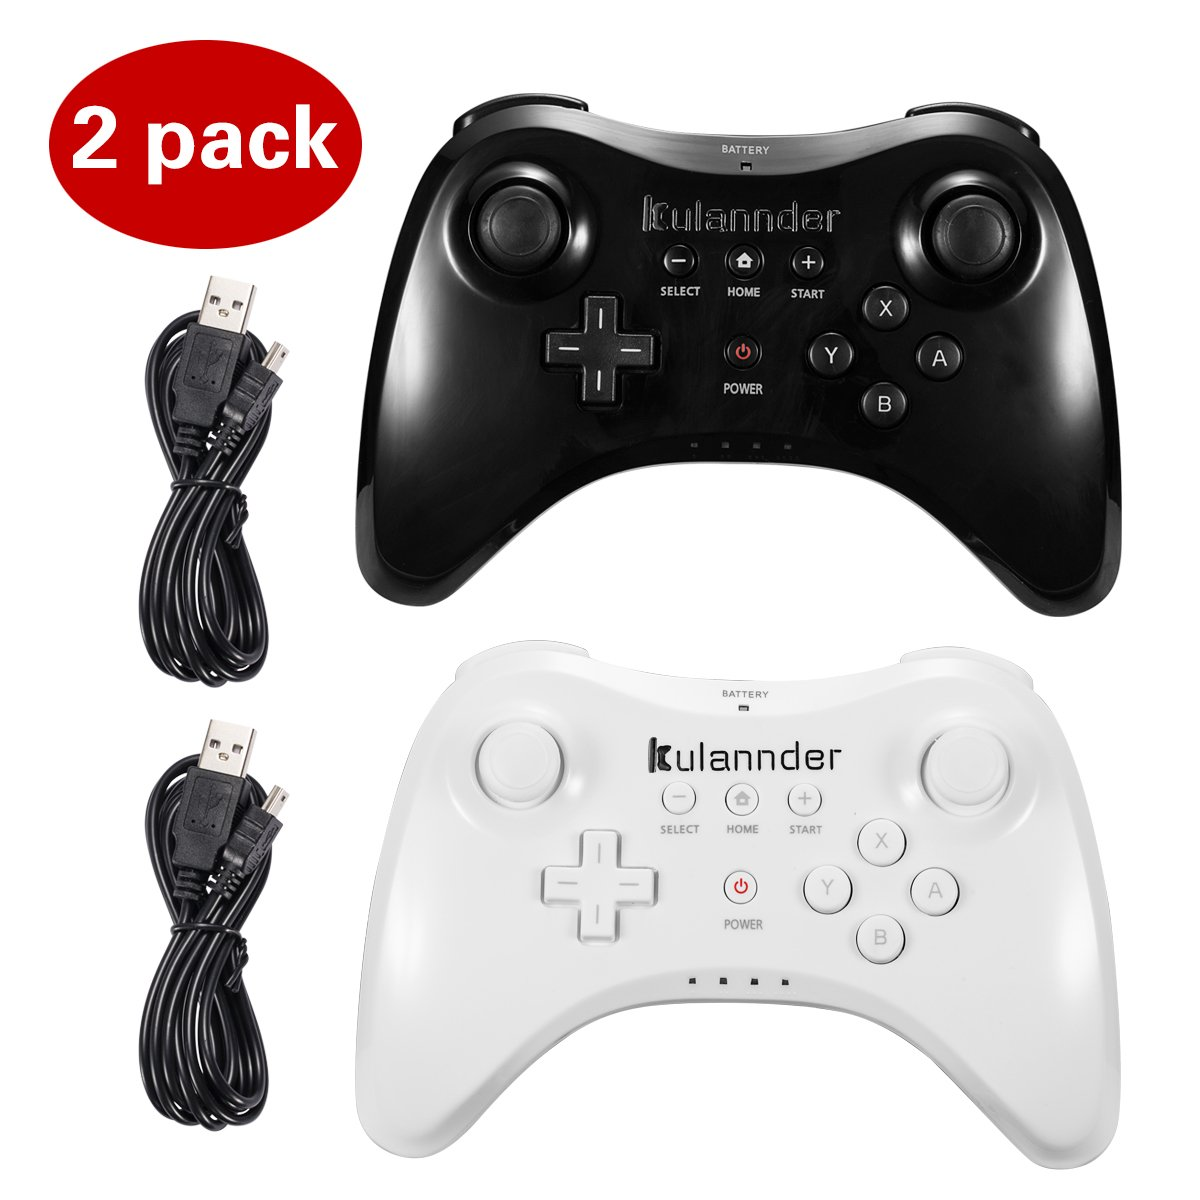 Wii U Pro Controller- Kulannder Wireless Rechargeable Bluetooth Dual Analog Controller Gamepad for Nintendo Wii U with USB Charging Cable (Black+White)2Pack,Perfect Gift for Kids